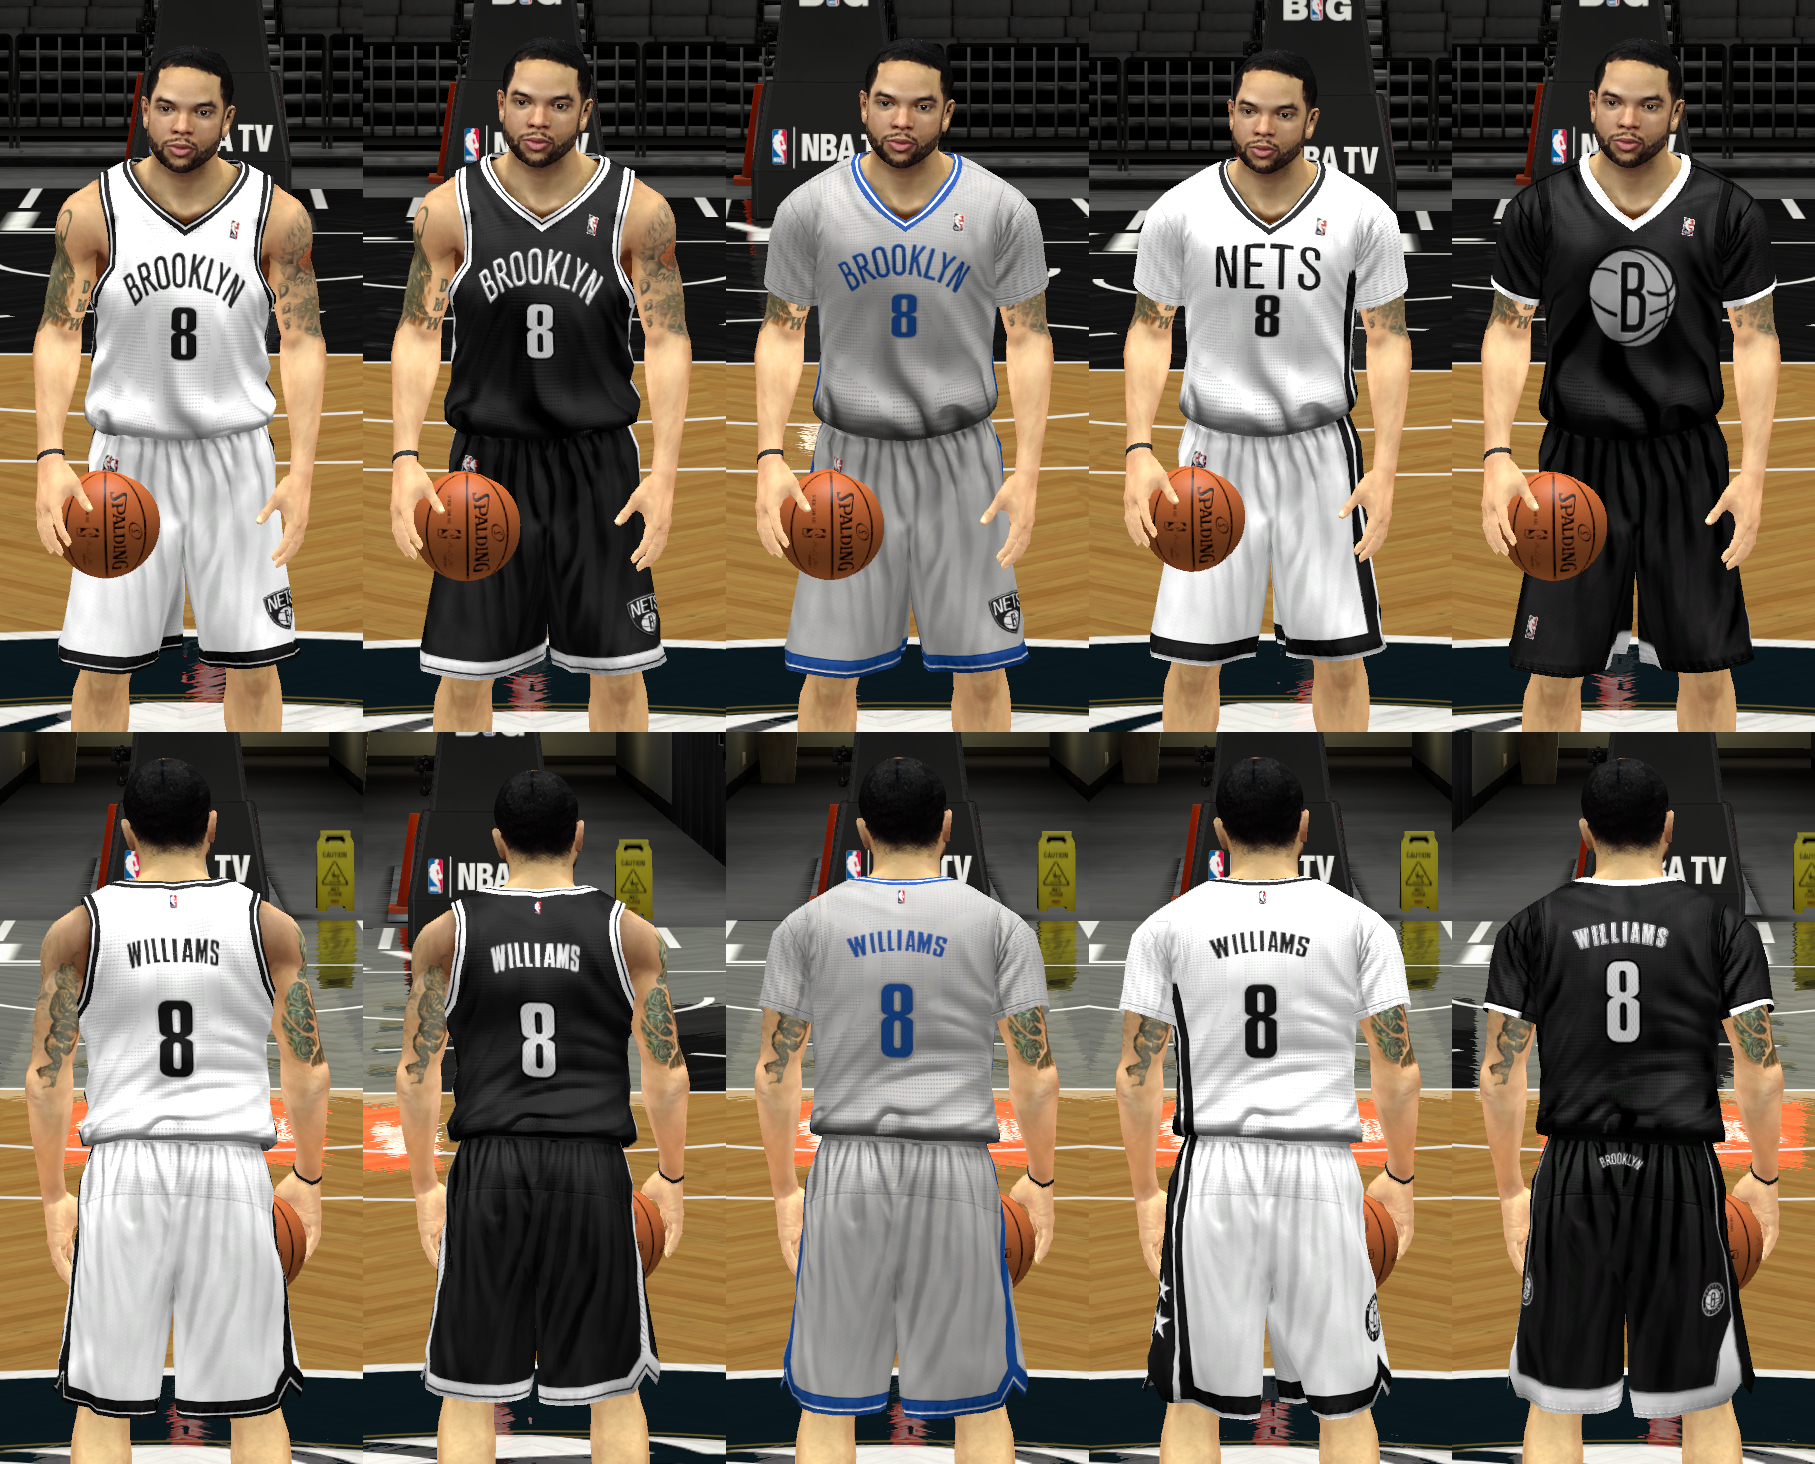 c2cf43596cc NLSC Forum • Downloads - 2015 Brooklyn Nets Uniforms